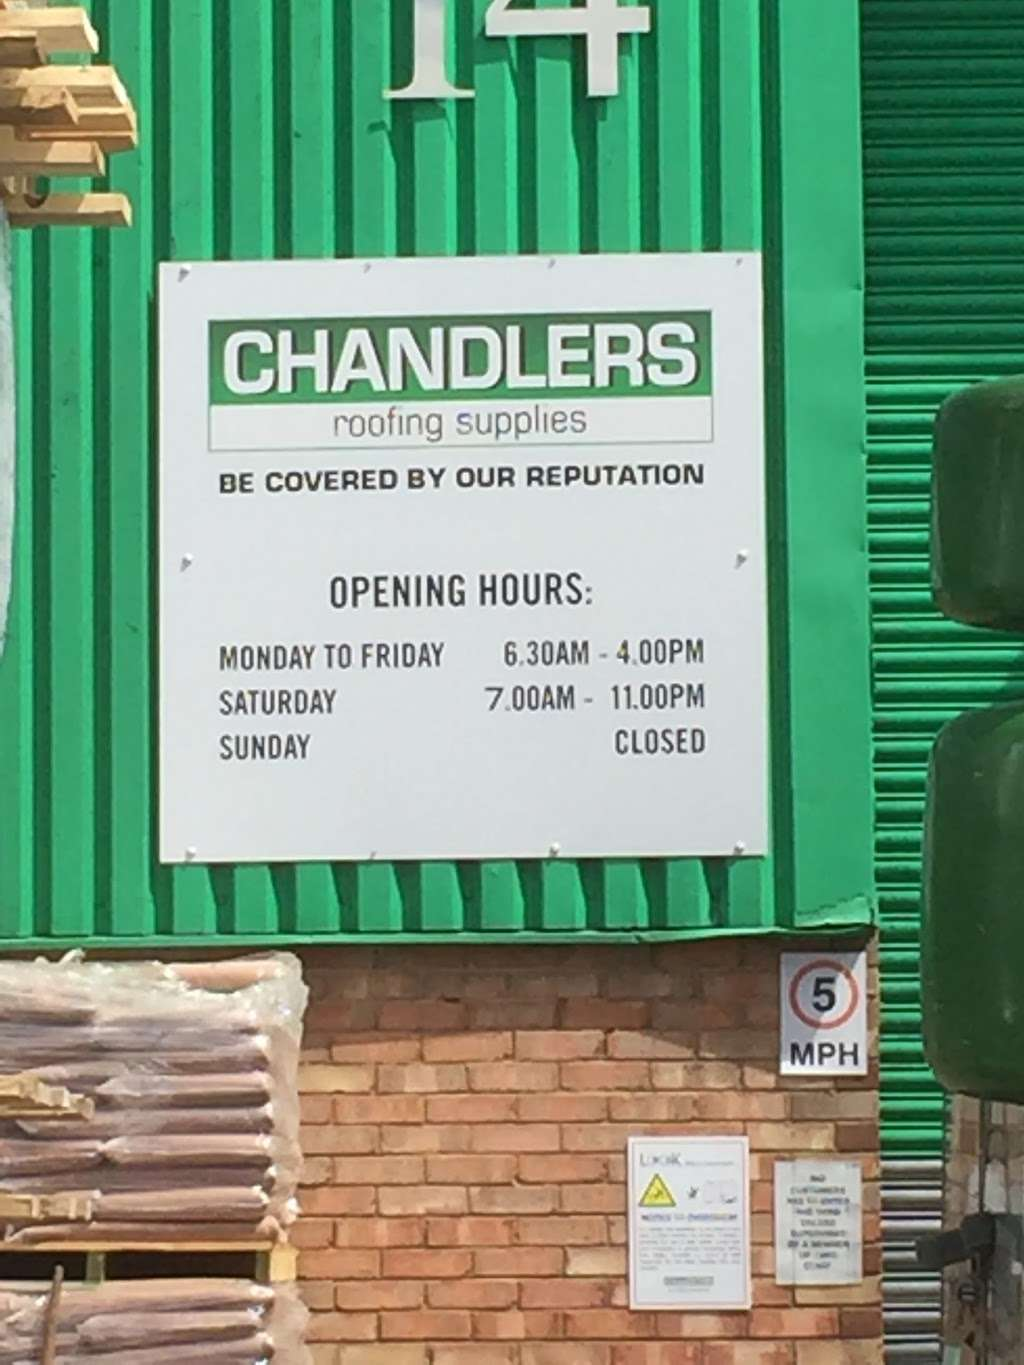 Chandlers Roofing Supplies 14 Gateway Industrial Estate Hythe Road White City London Nw10 6rj Uk